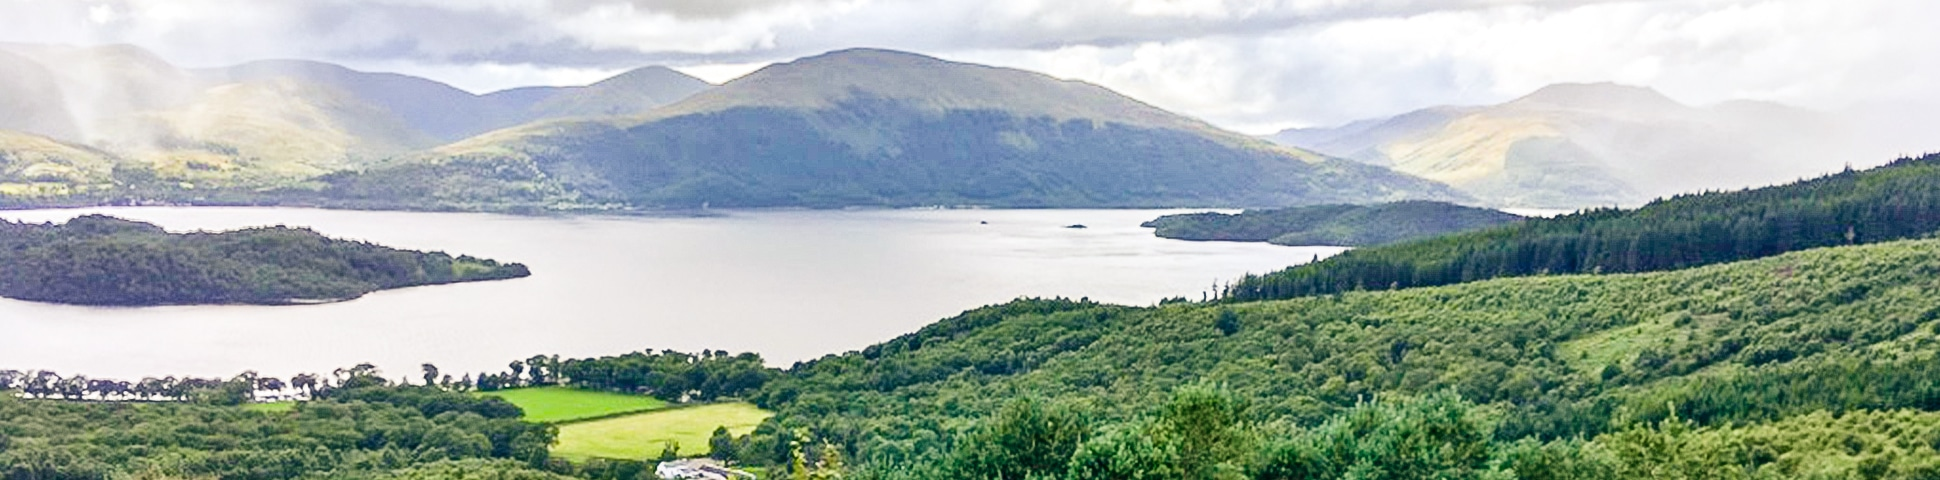 Panorama on Cashel forest hike in Loch Lomond and The Trossachs area in Scotland